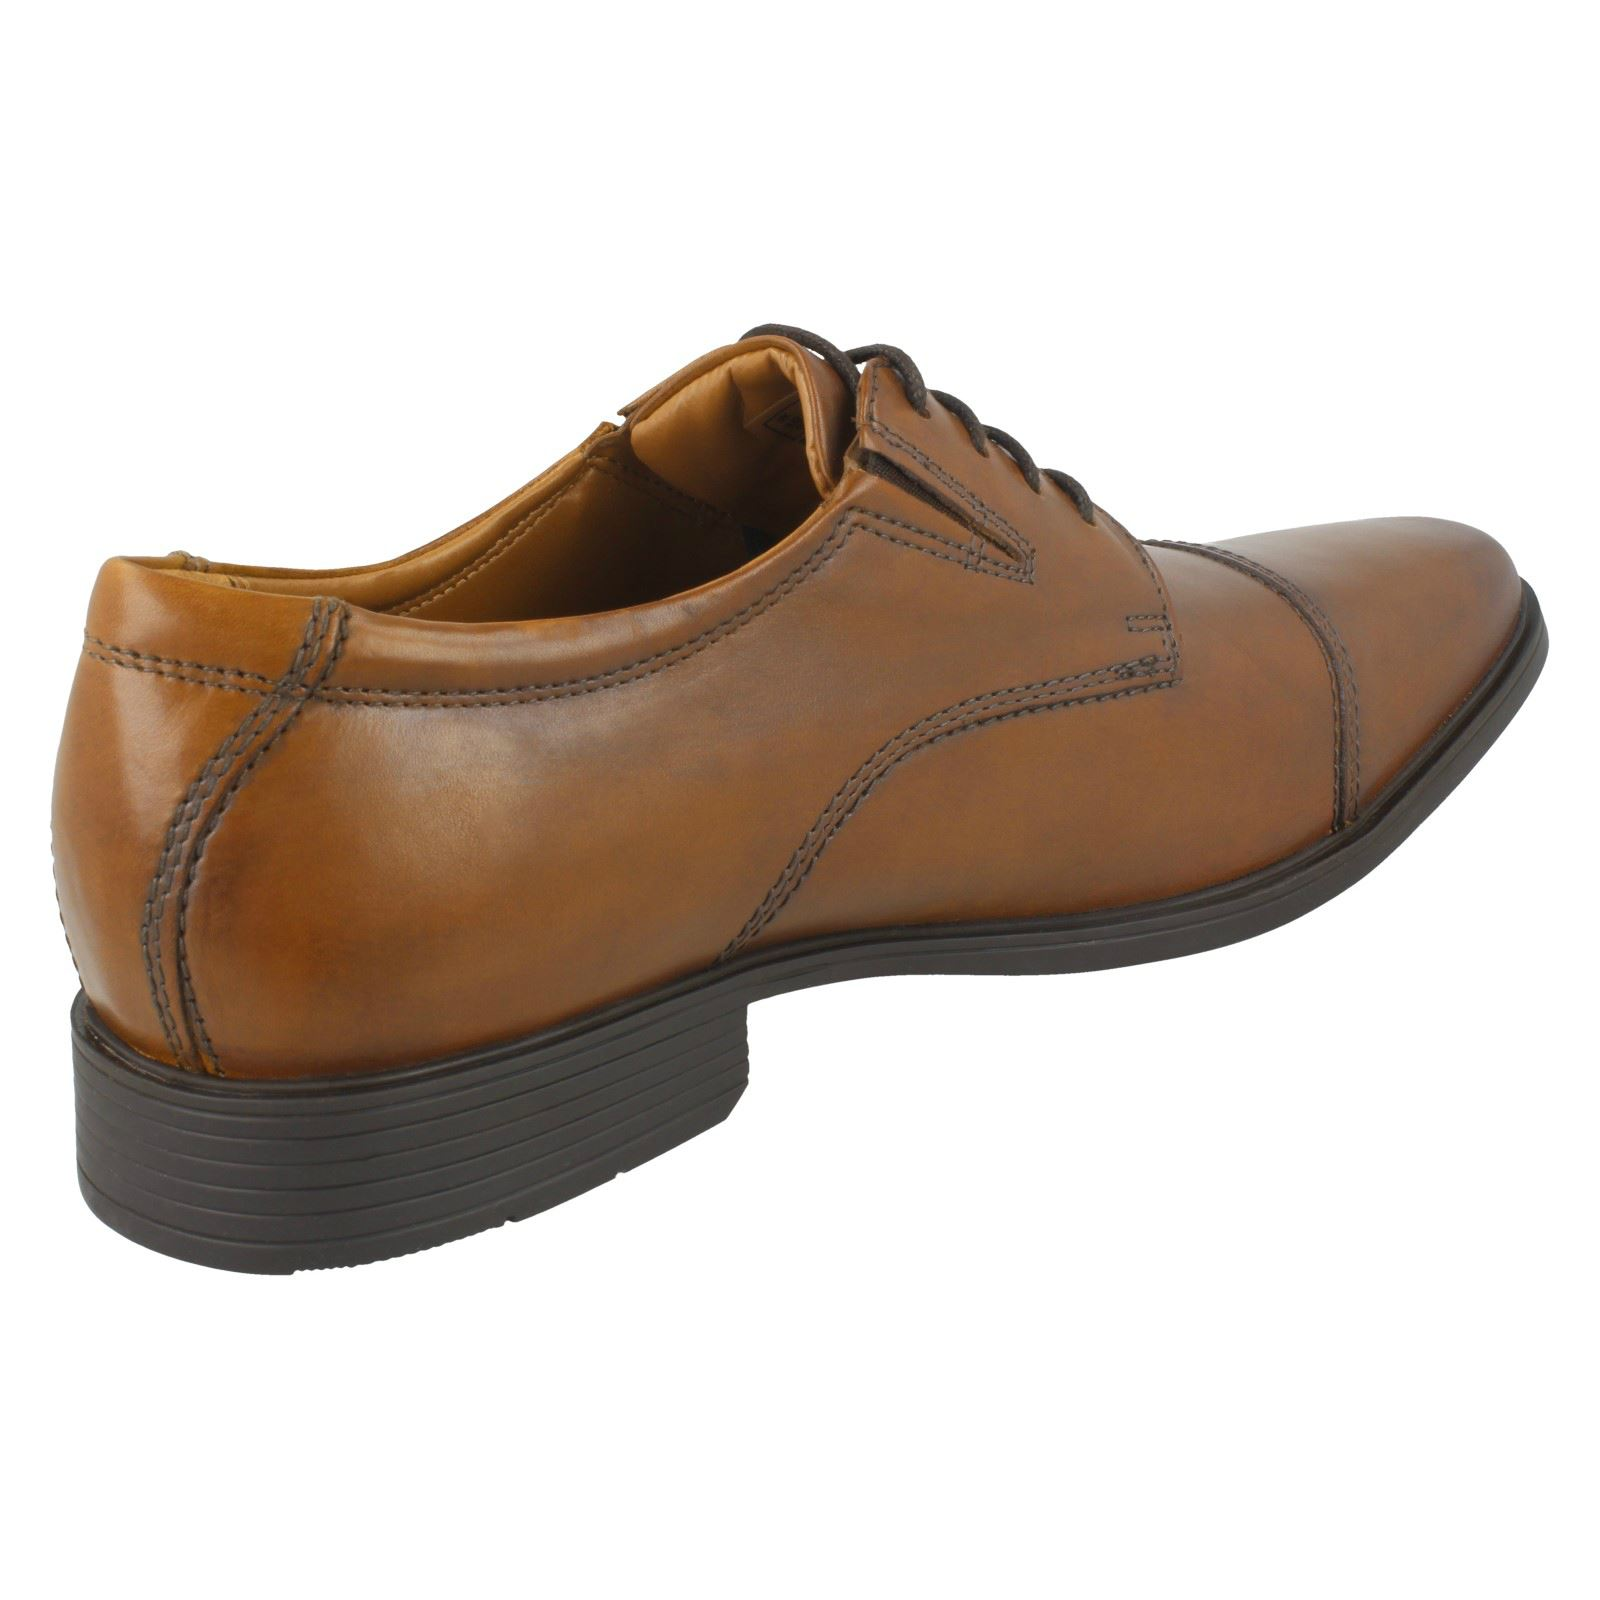 Mens-Clarks-Formal-Lace-Up-Shoes-Tilden-Cap thumbnail 22